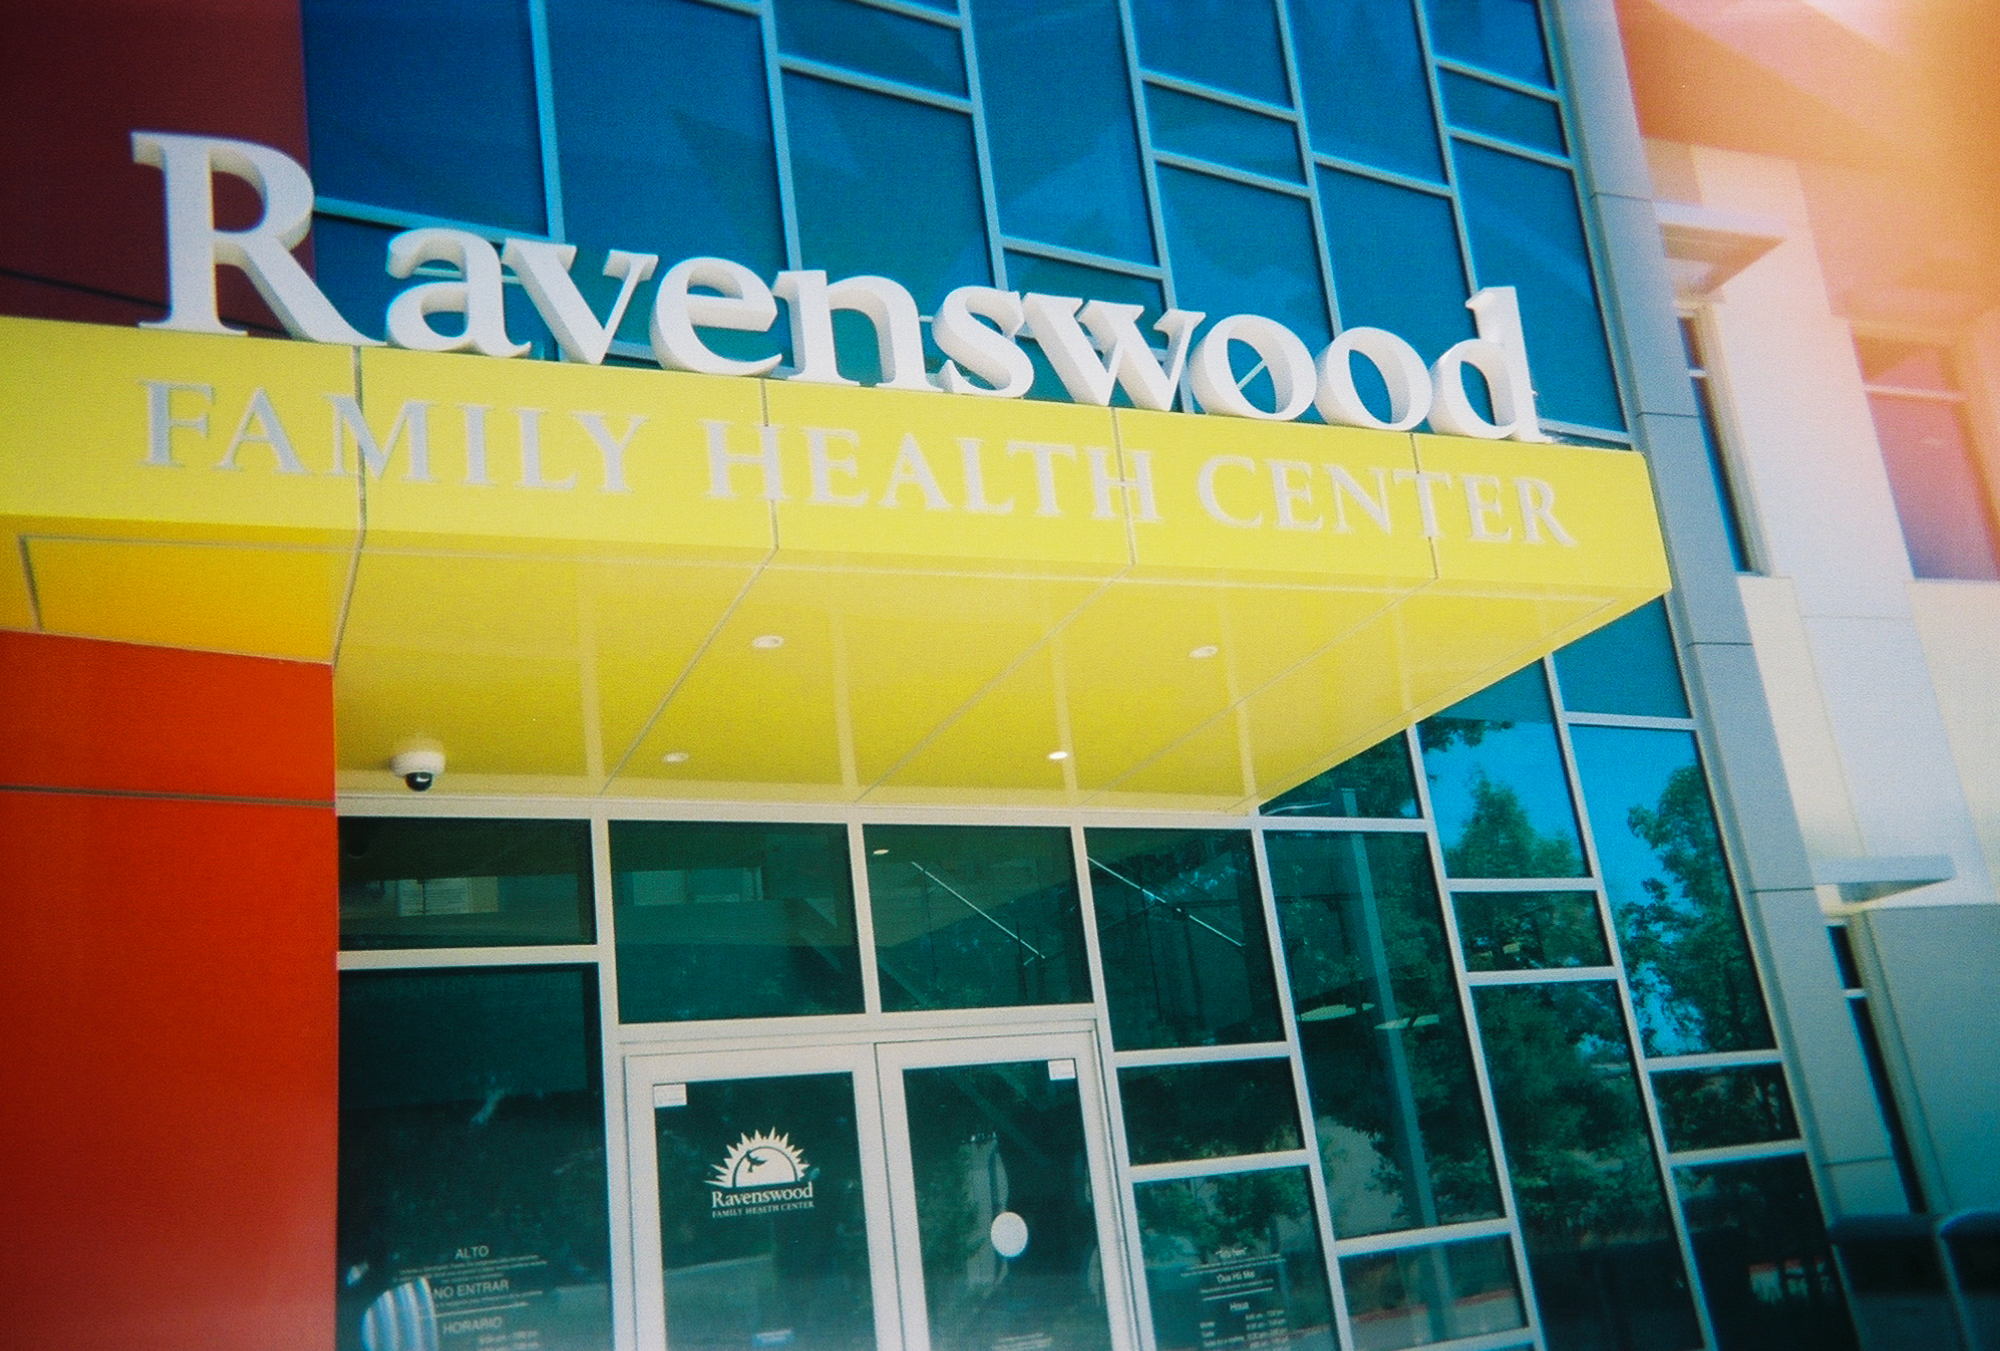 The Ravenswood Family Health Center, based in East Palo Alto serves low-income residents in East Palo Alto, Belle Haven and North Fair Oaks. (Photo by Sitara Dhillon.)